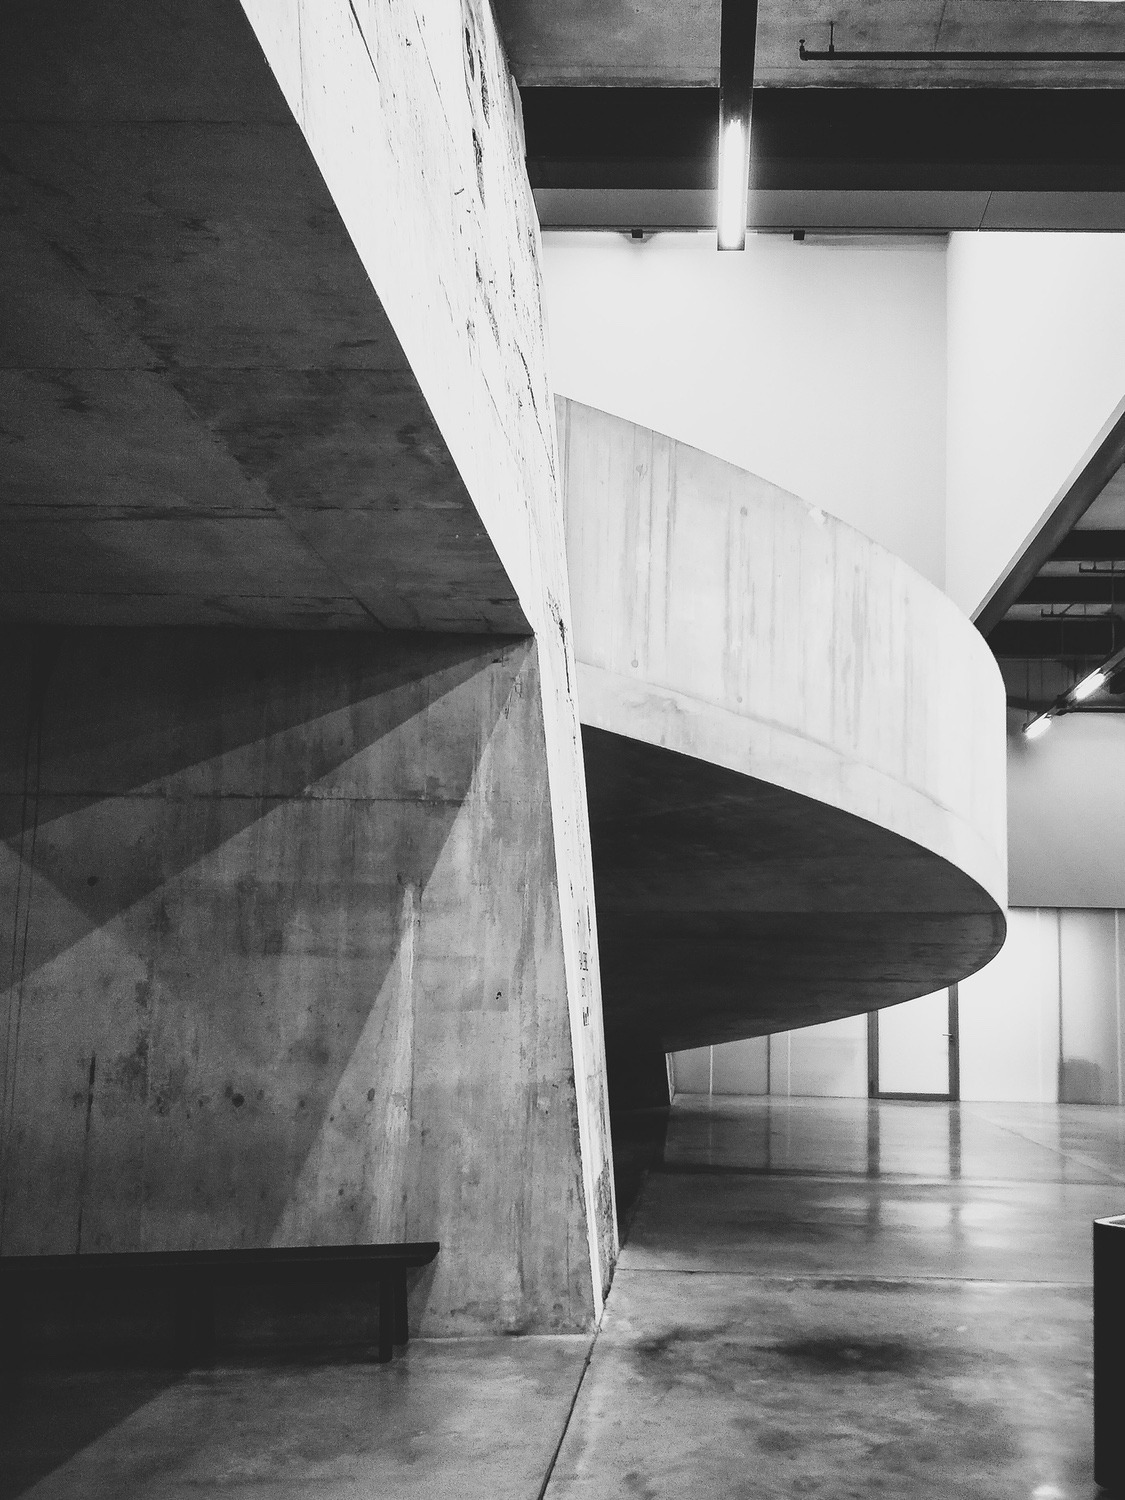 The concrete architecture of the Tate underbelly